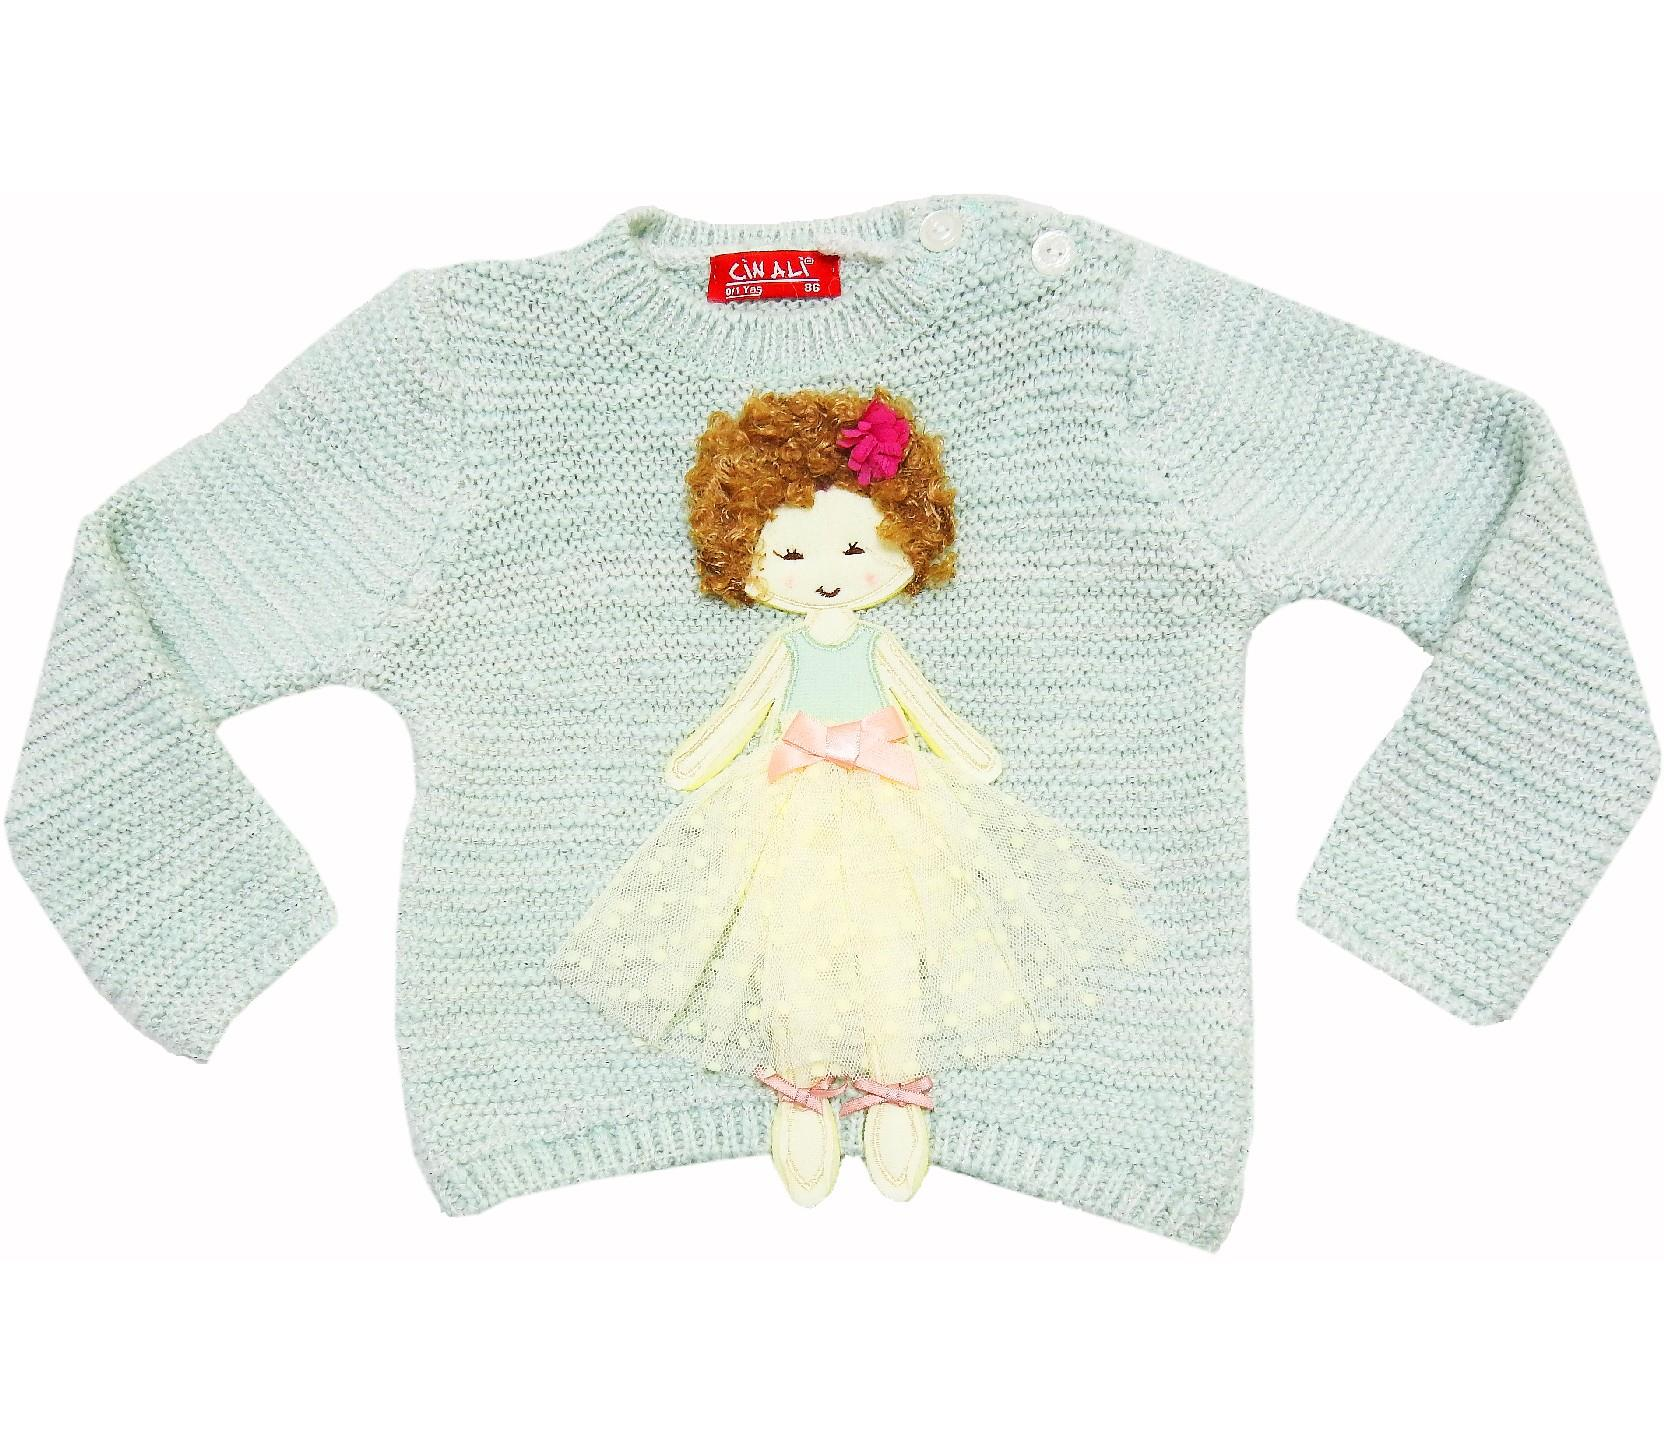 WHOLESALE GIRL DOLL APPLIQUE DESIGN SWEATER PULLOVER FOR GIRL/ BABY KIDS (1-2-3 AGE)